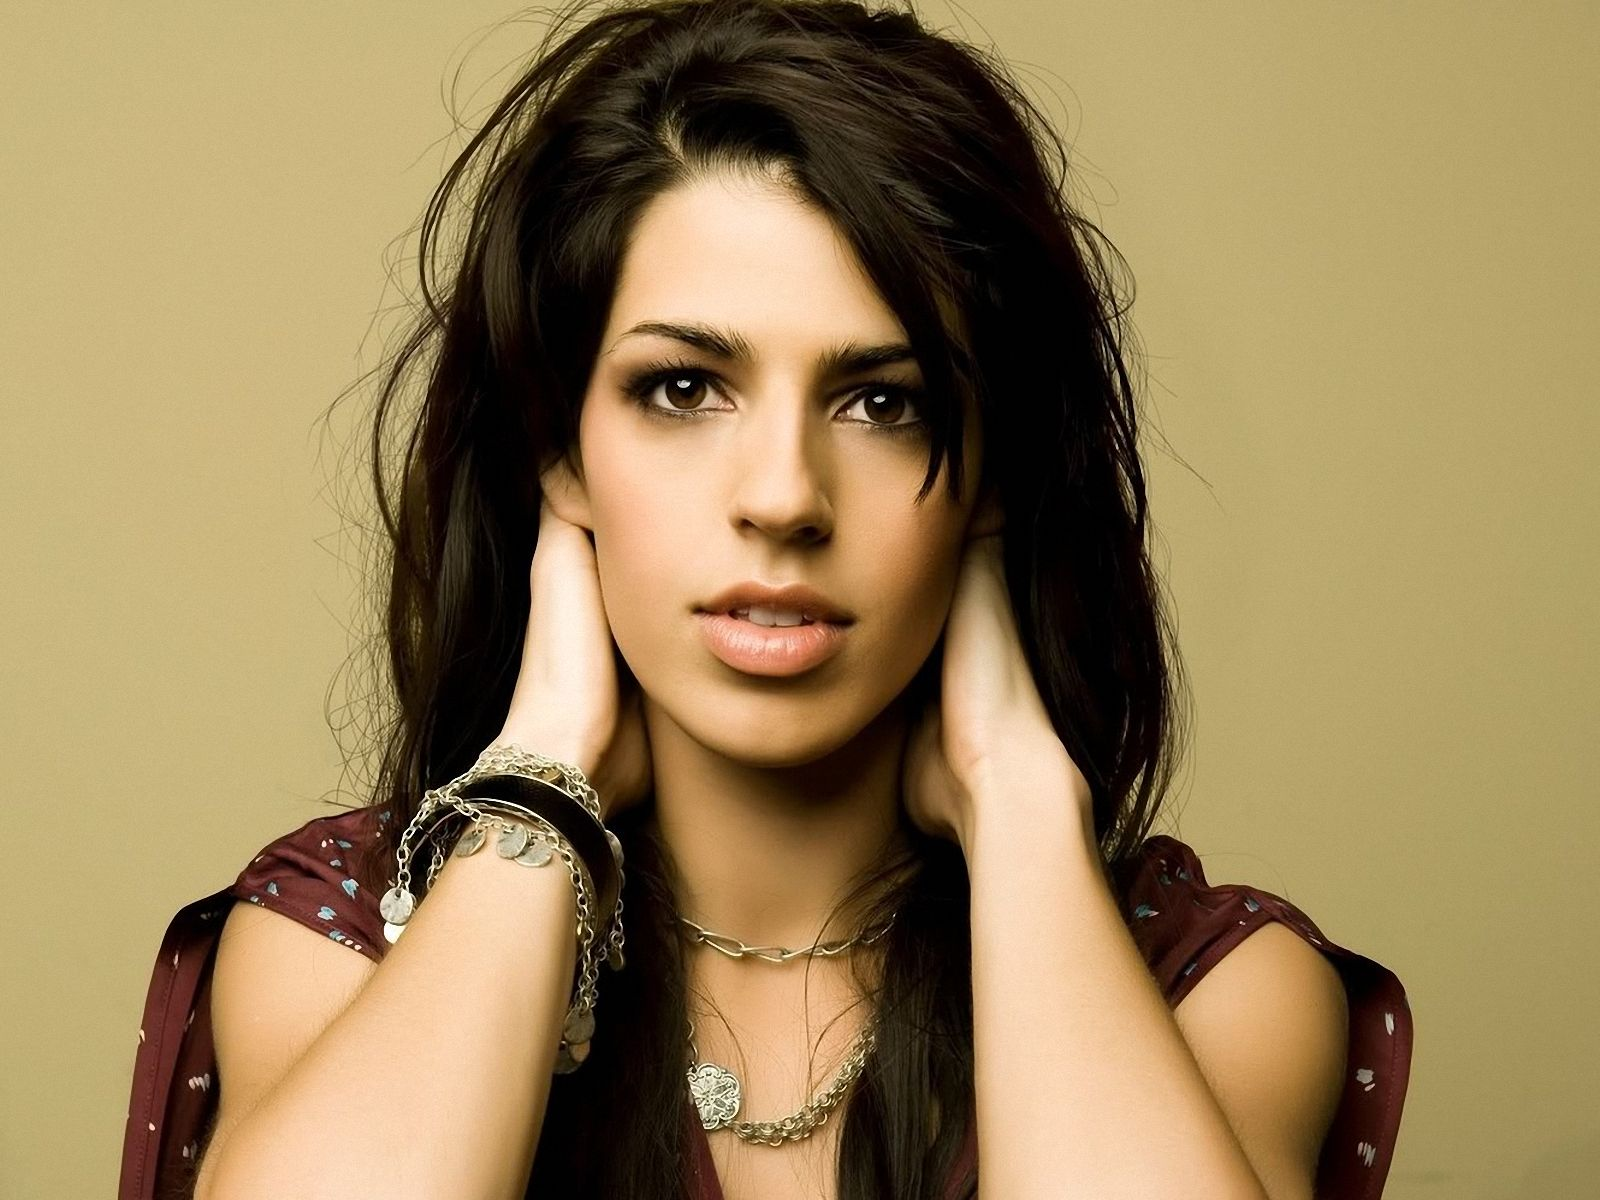 Brooke Fraser Wallpaper 1600x1200 Wallpapers 1600x1200 1600x1200